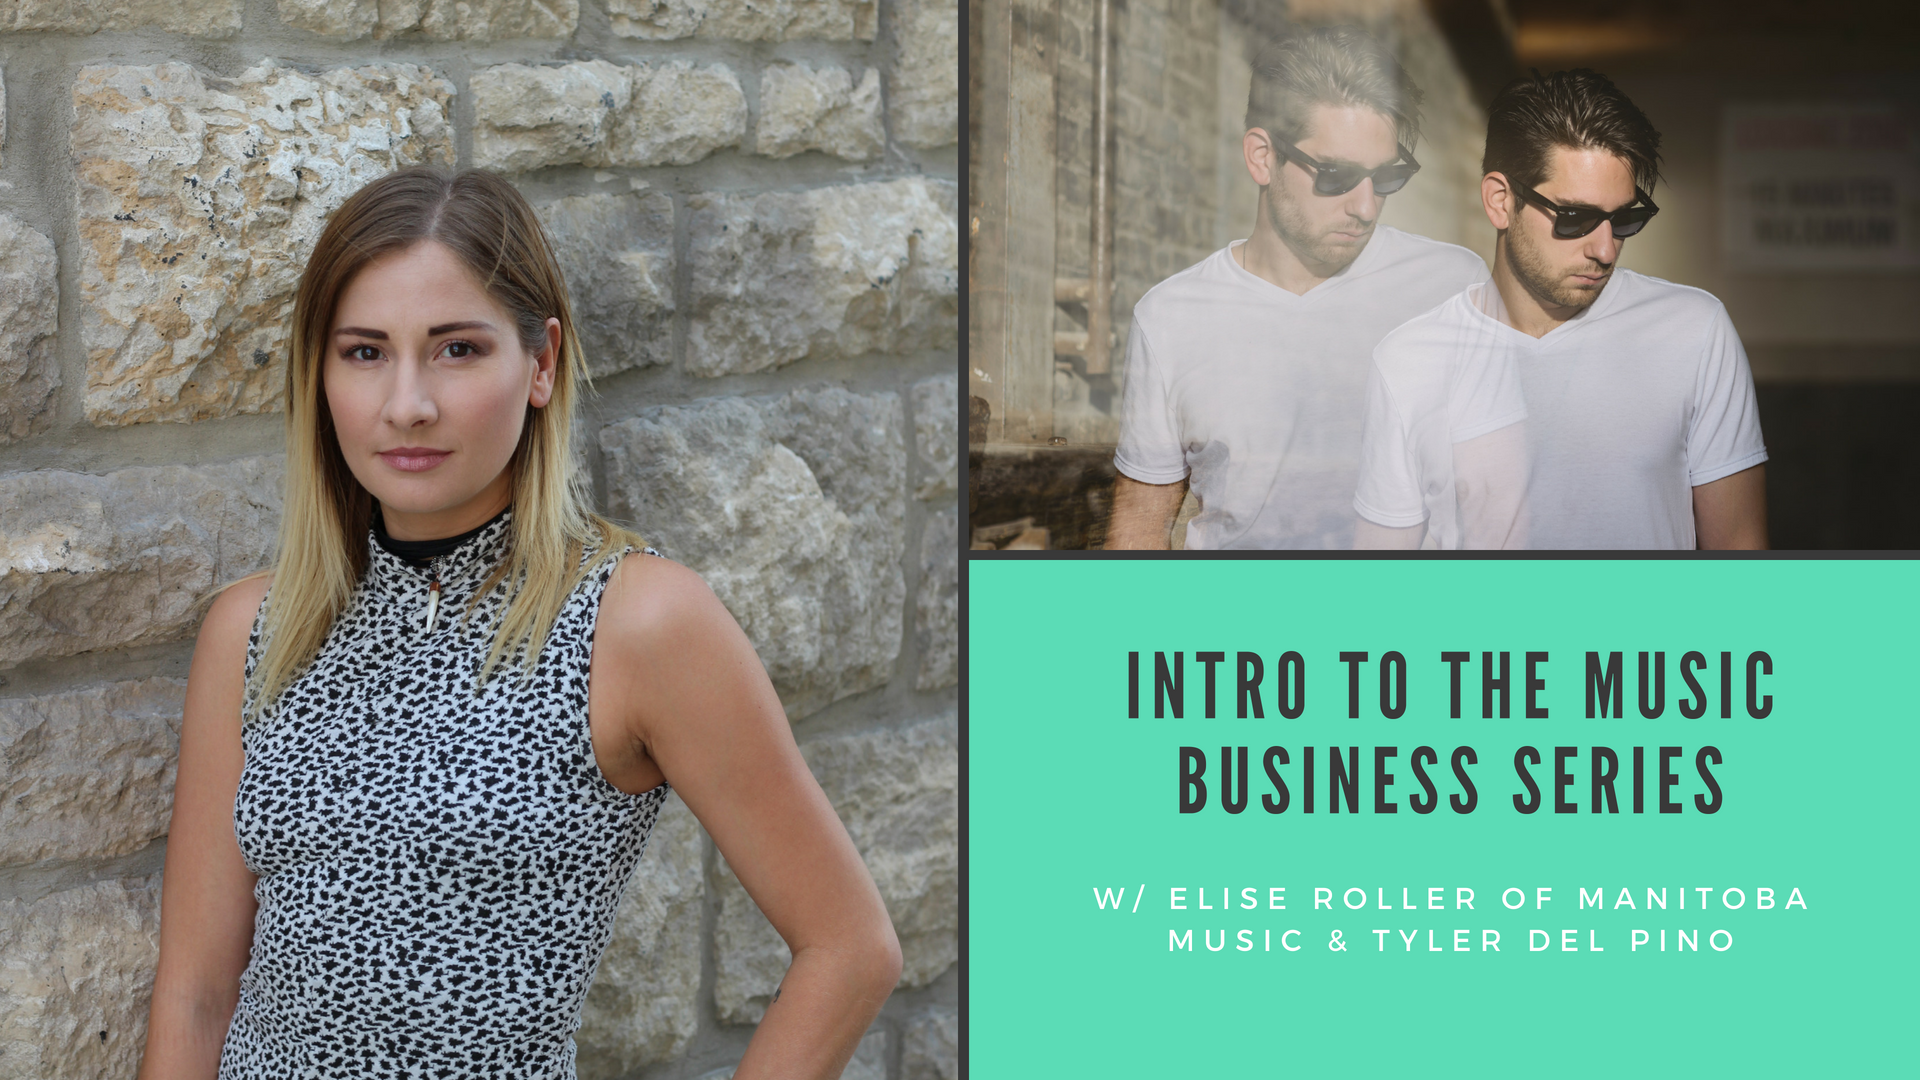 Intro to the Music Business Series